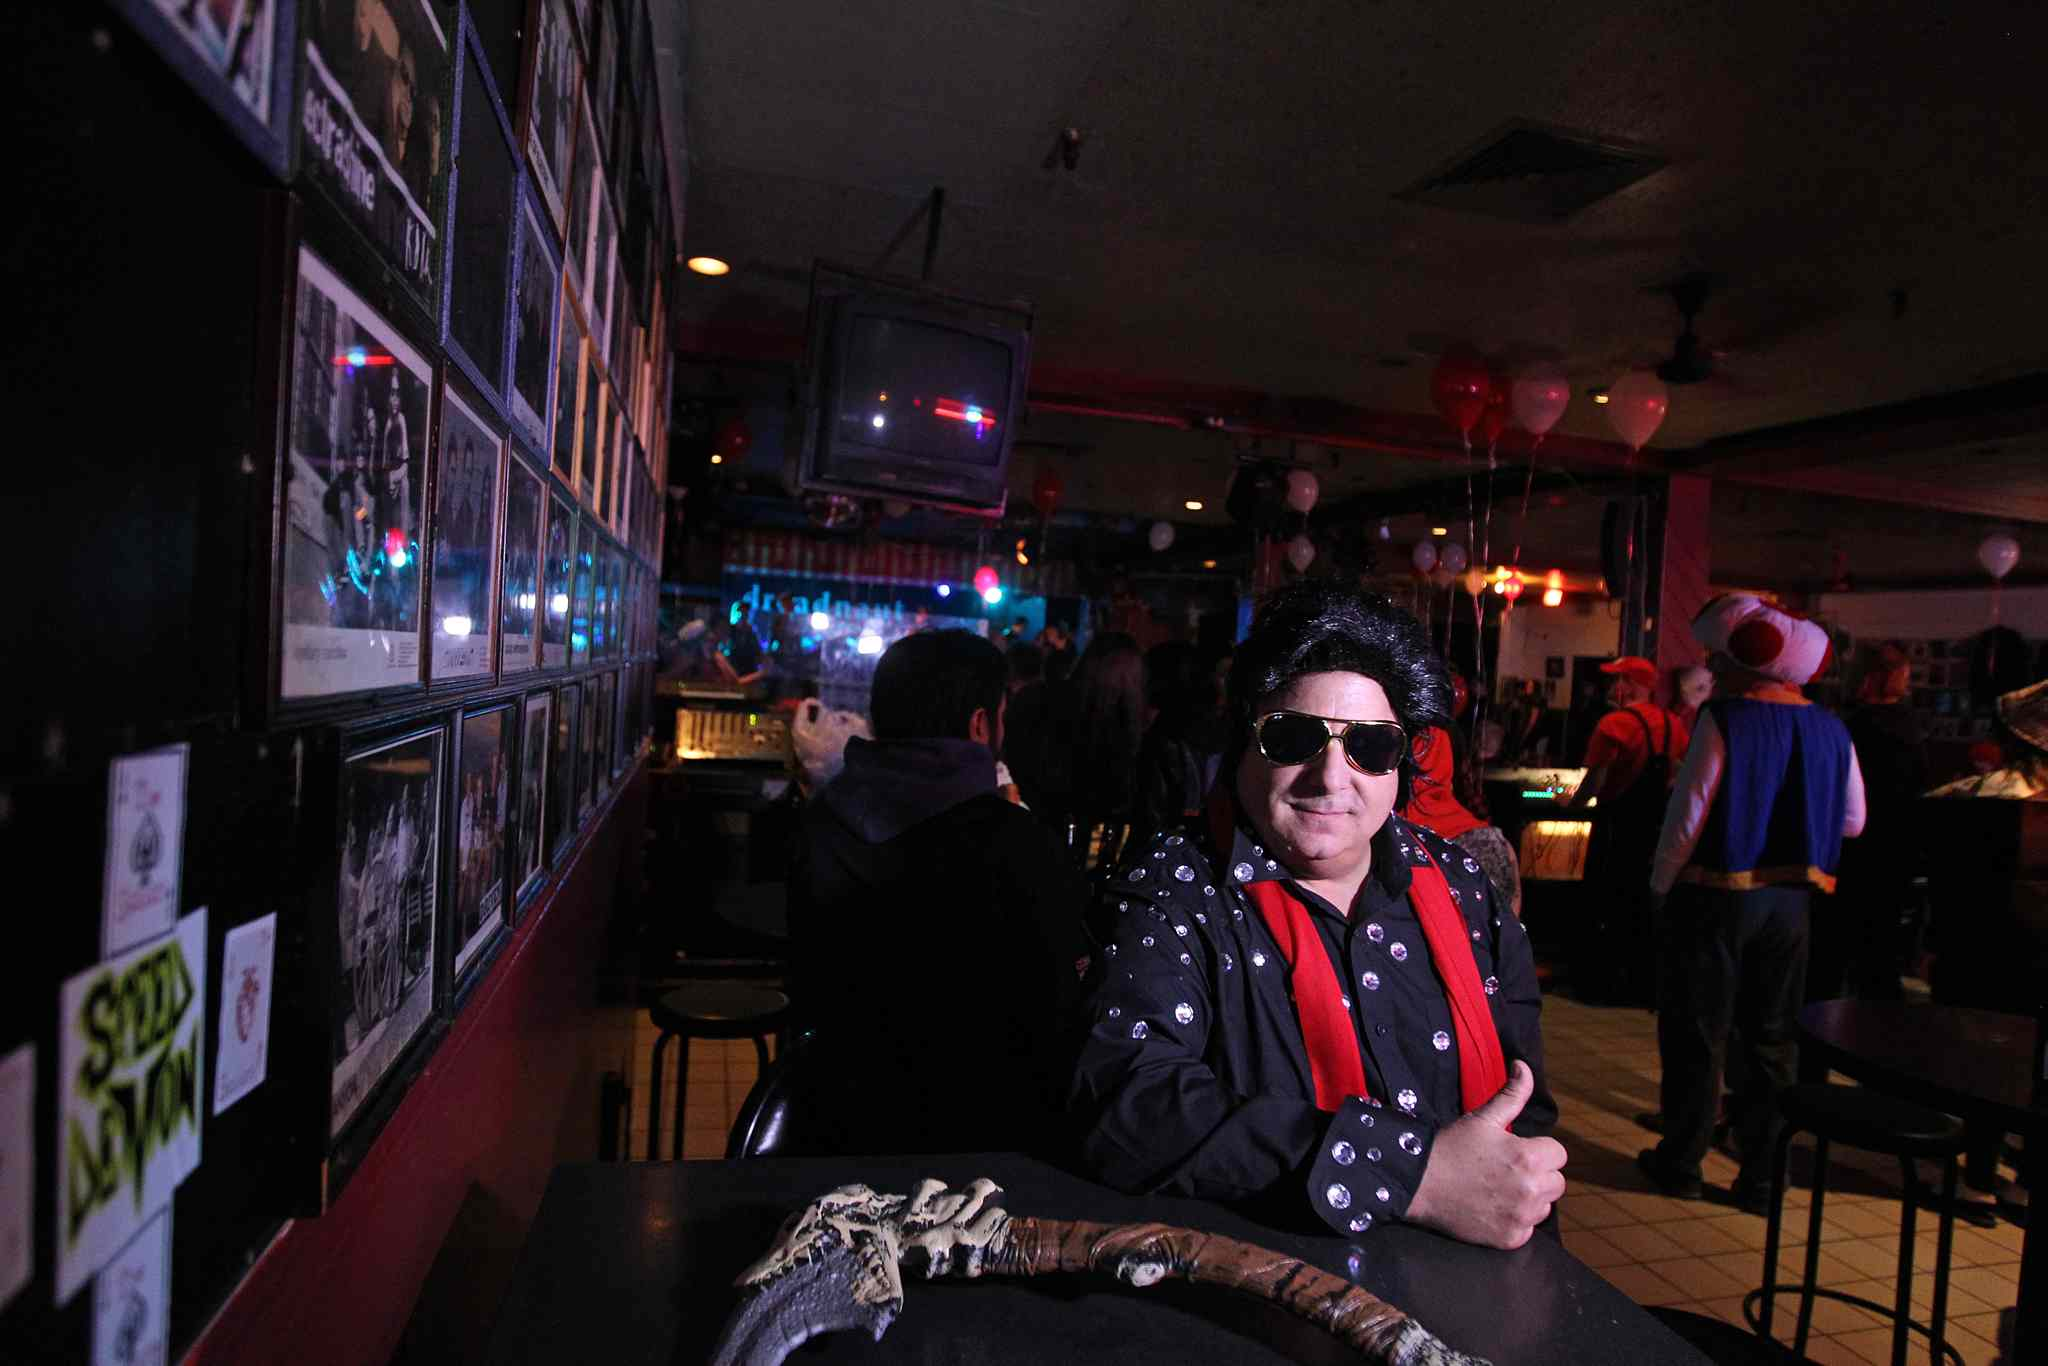 Dave Green wears an Elvis costume for Halloween on The Zoo's last night of operation.